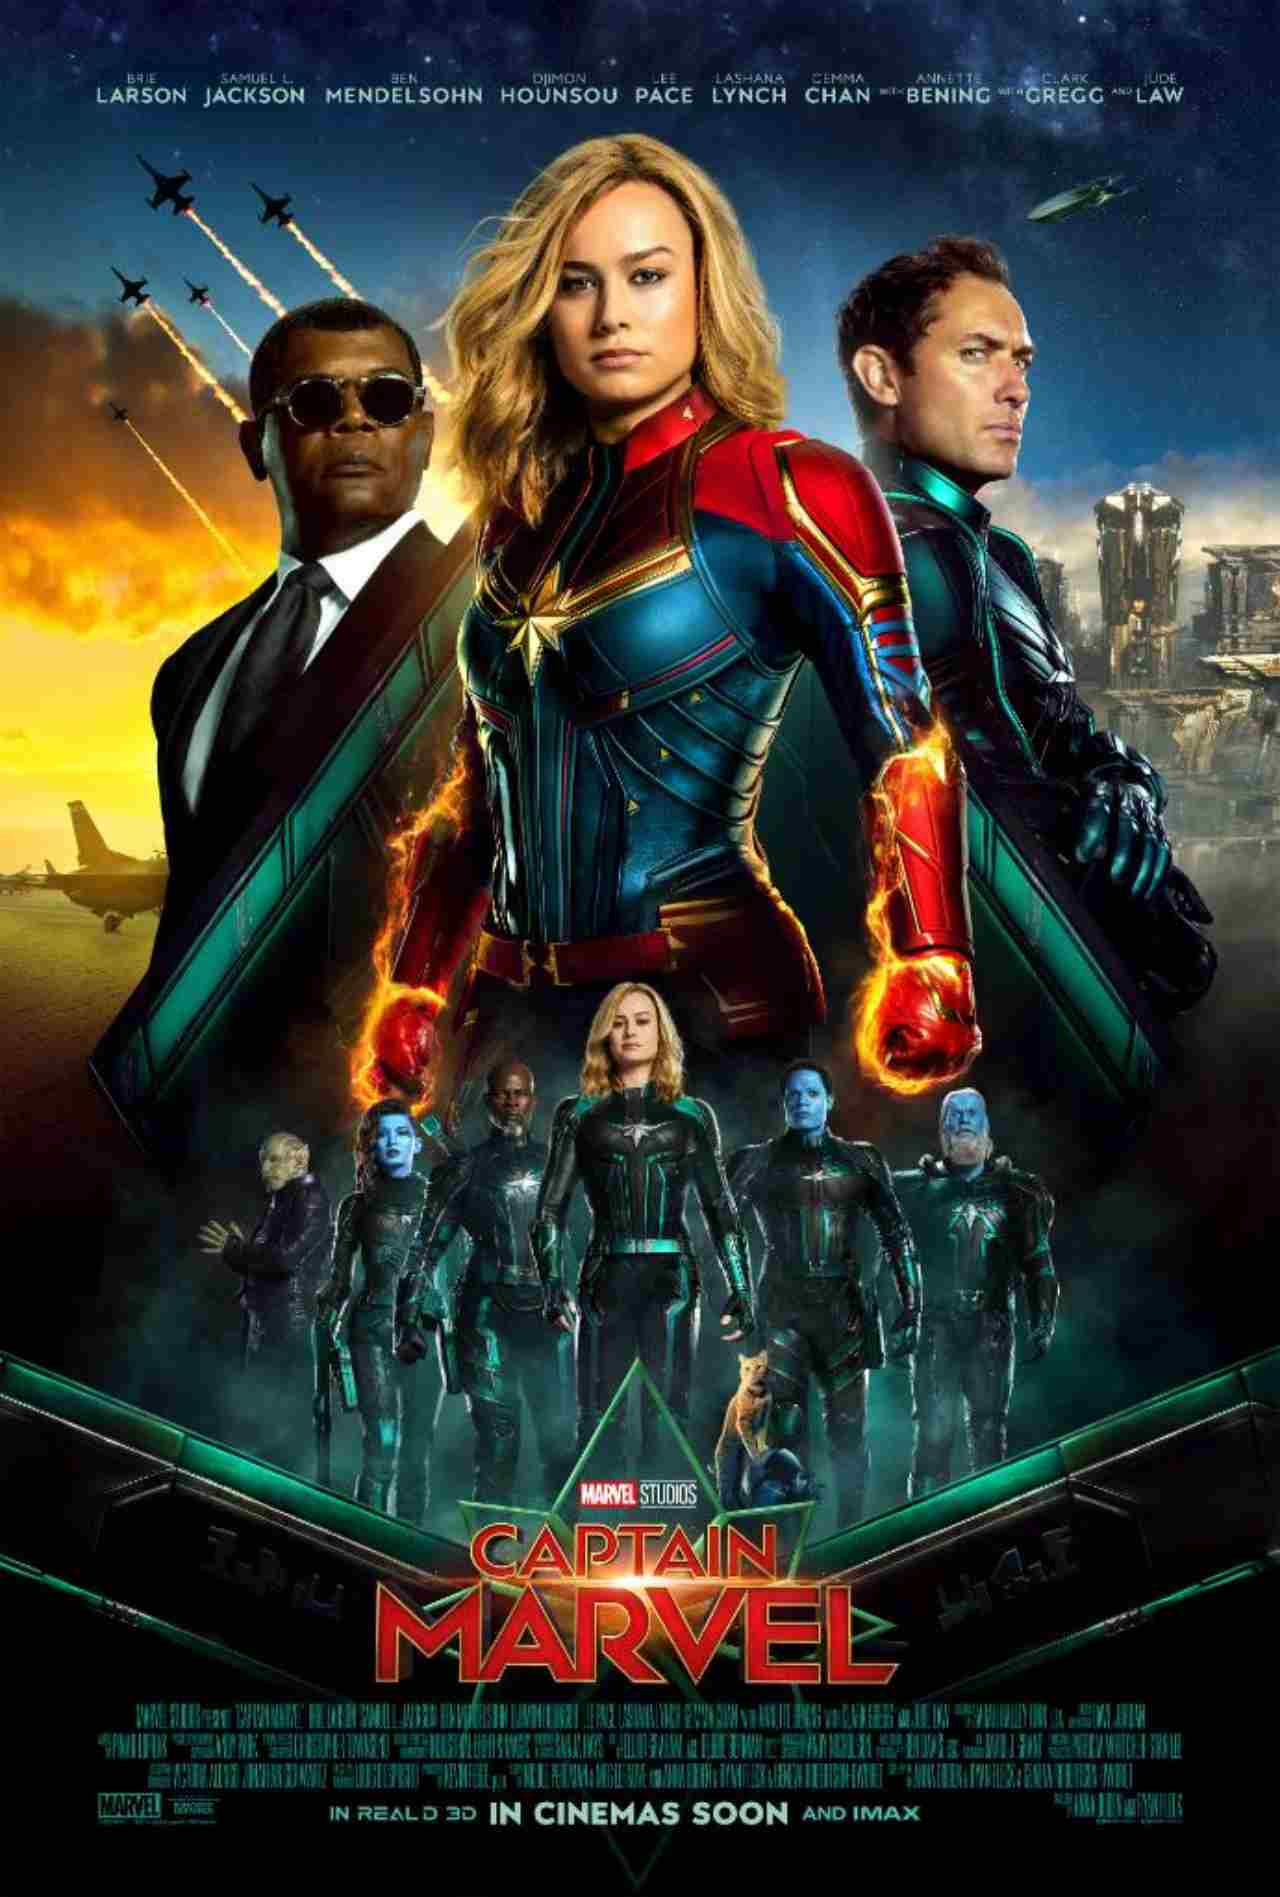 Captain Marvel | Box Office: Rs 85 crore (expected) | Marvel films have a strong audience base in India and that was evident in the recent release - Captain Marvel, which opened huge at Rs 13.01 crore. This was, in fact, the second biggest opening ever for a Hollywood film in India after Avengers: Infinity War. The movies weren't warmly received by one and all but still managed to hang on well to go past the Rs 80 crore mark. (Image: Captain Marvel/Twitter)